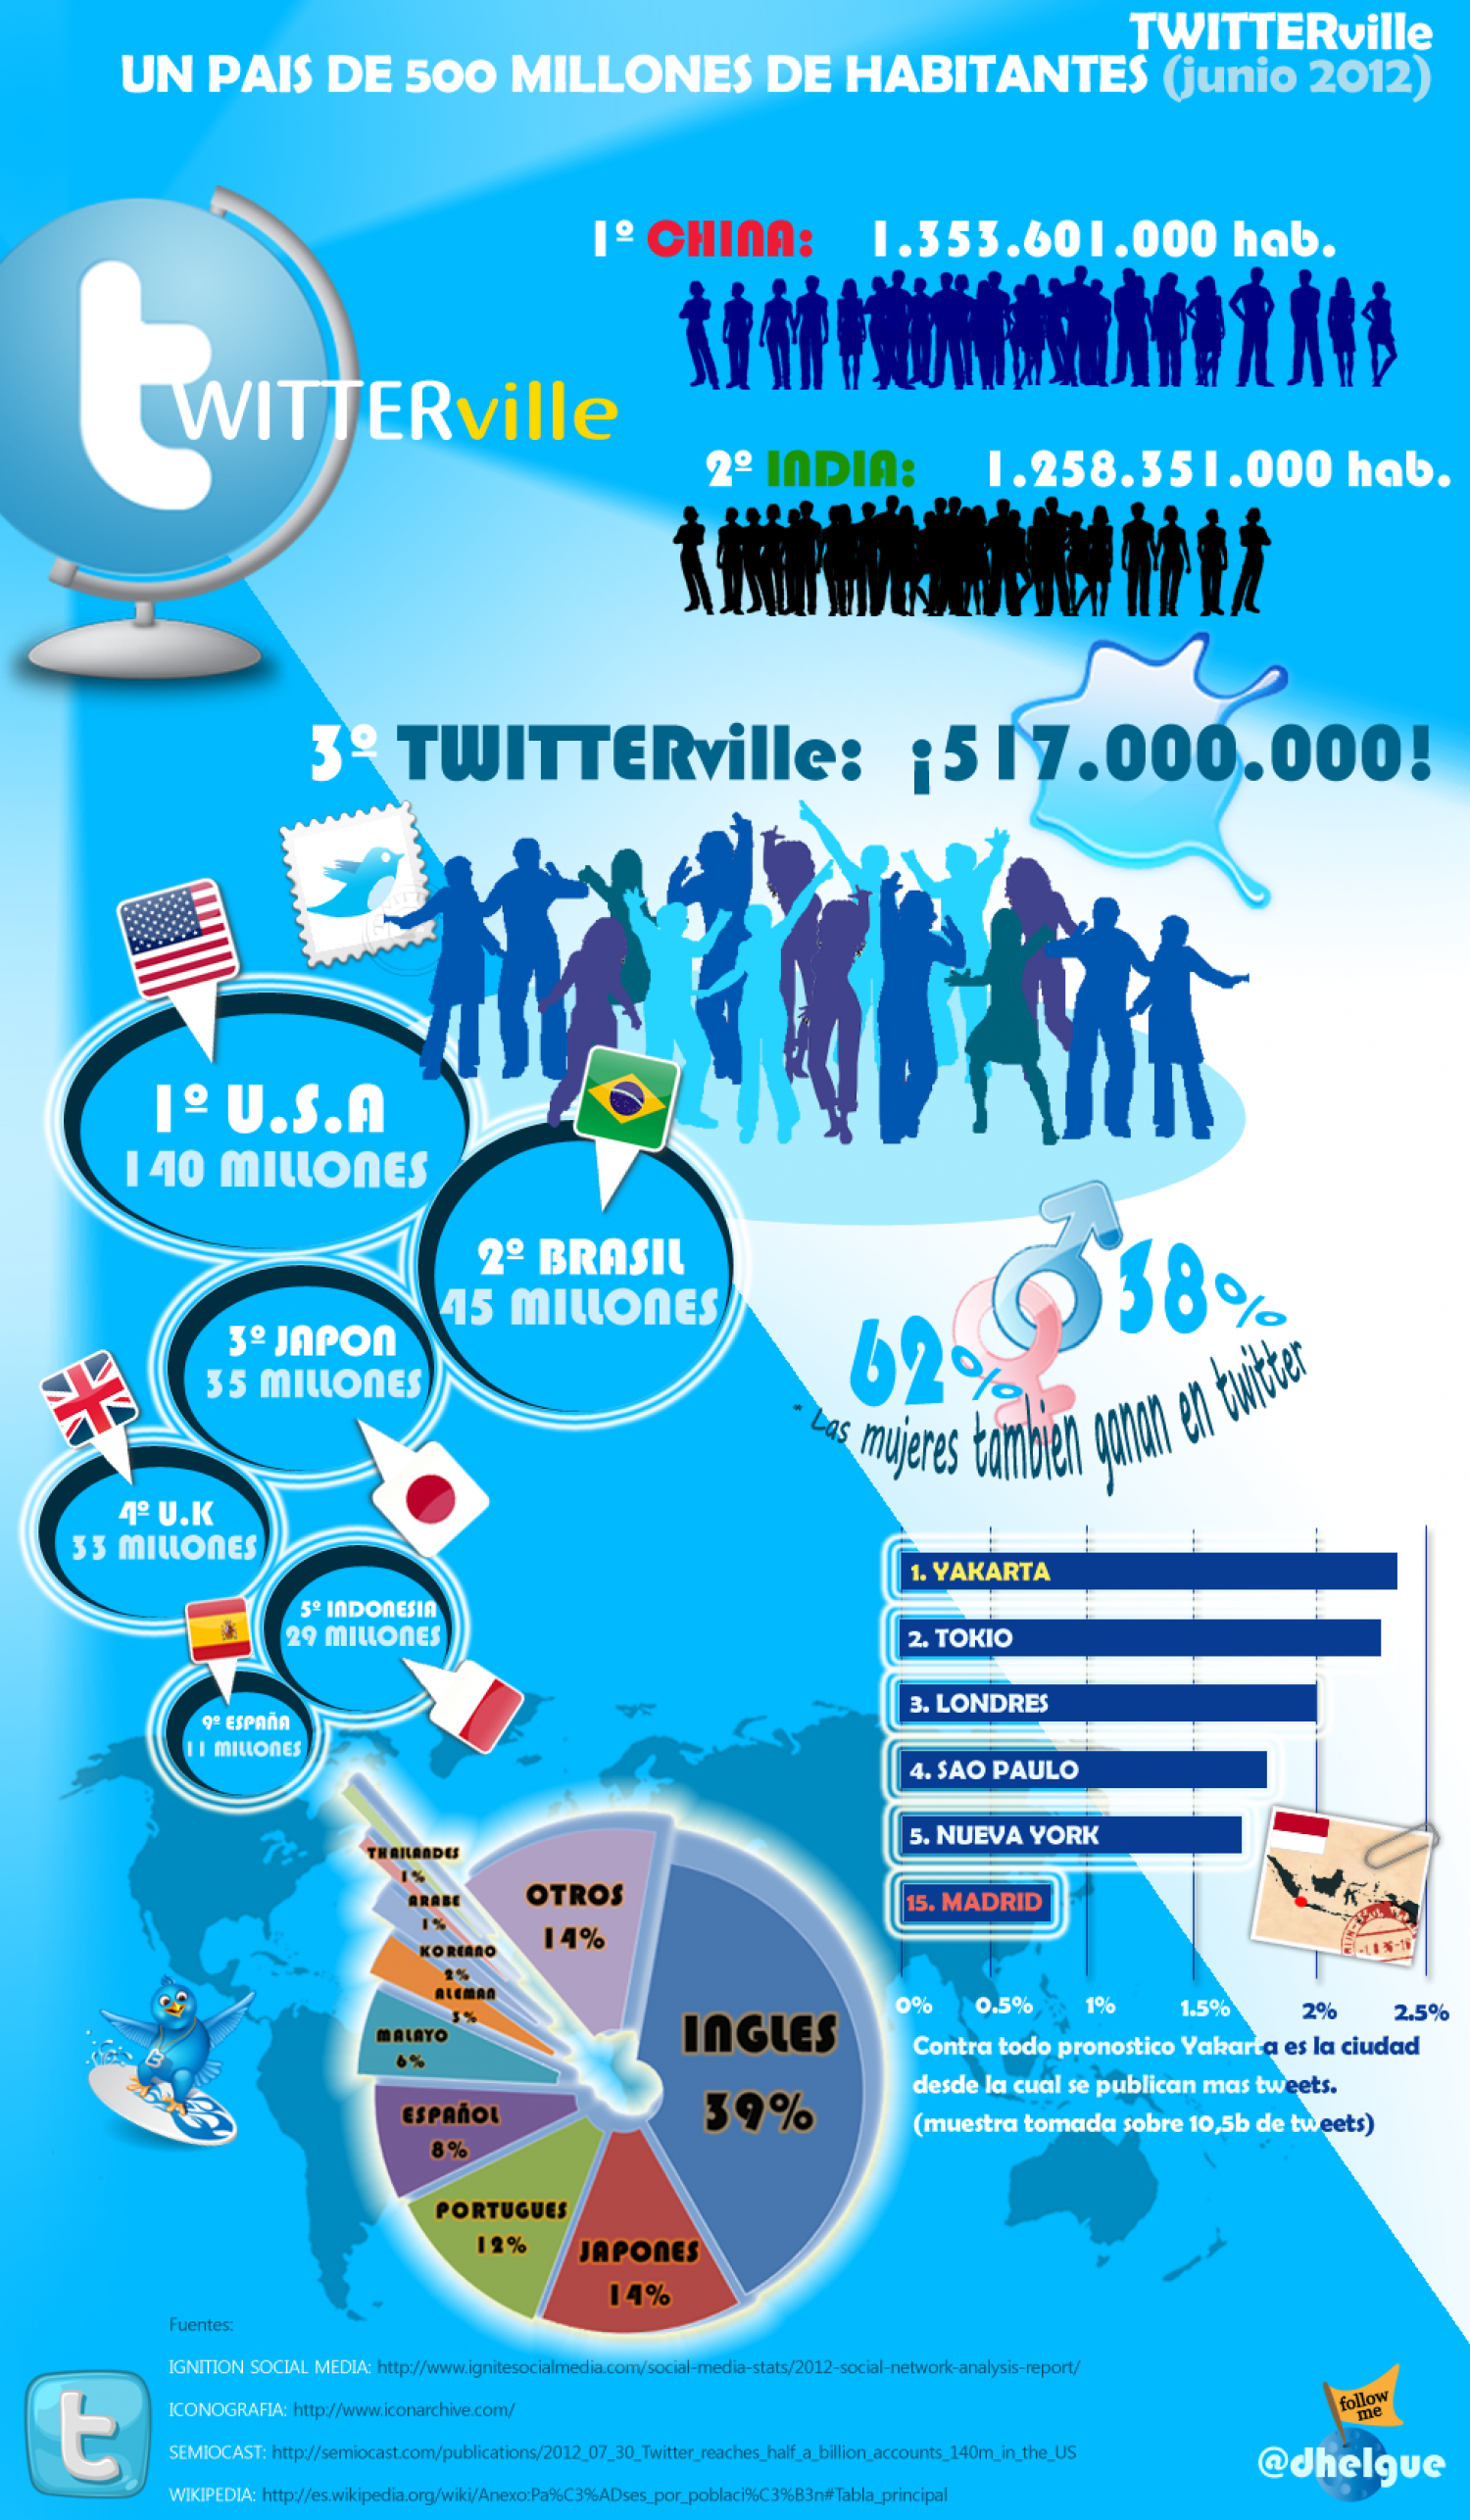 Twitterville Infographic